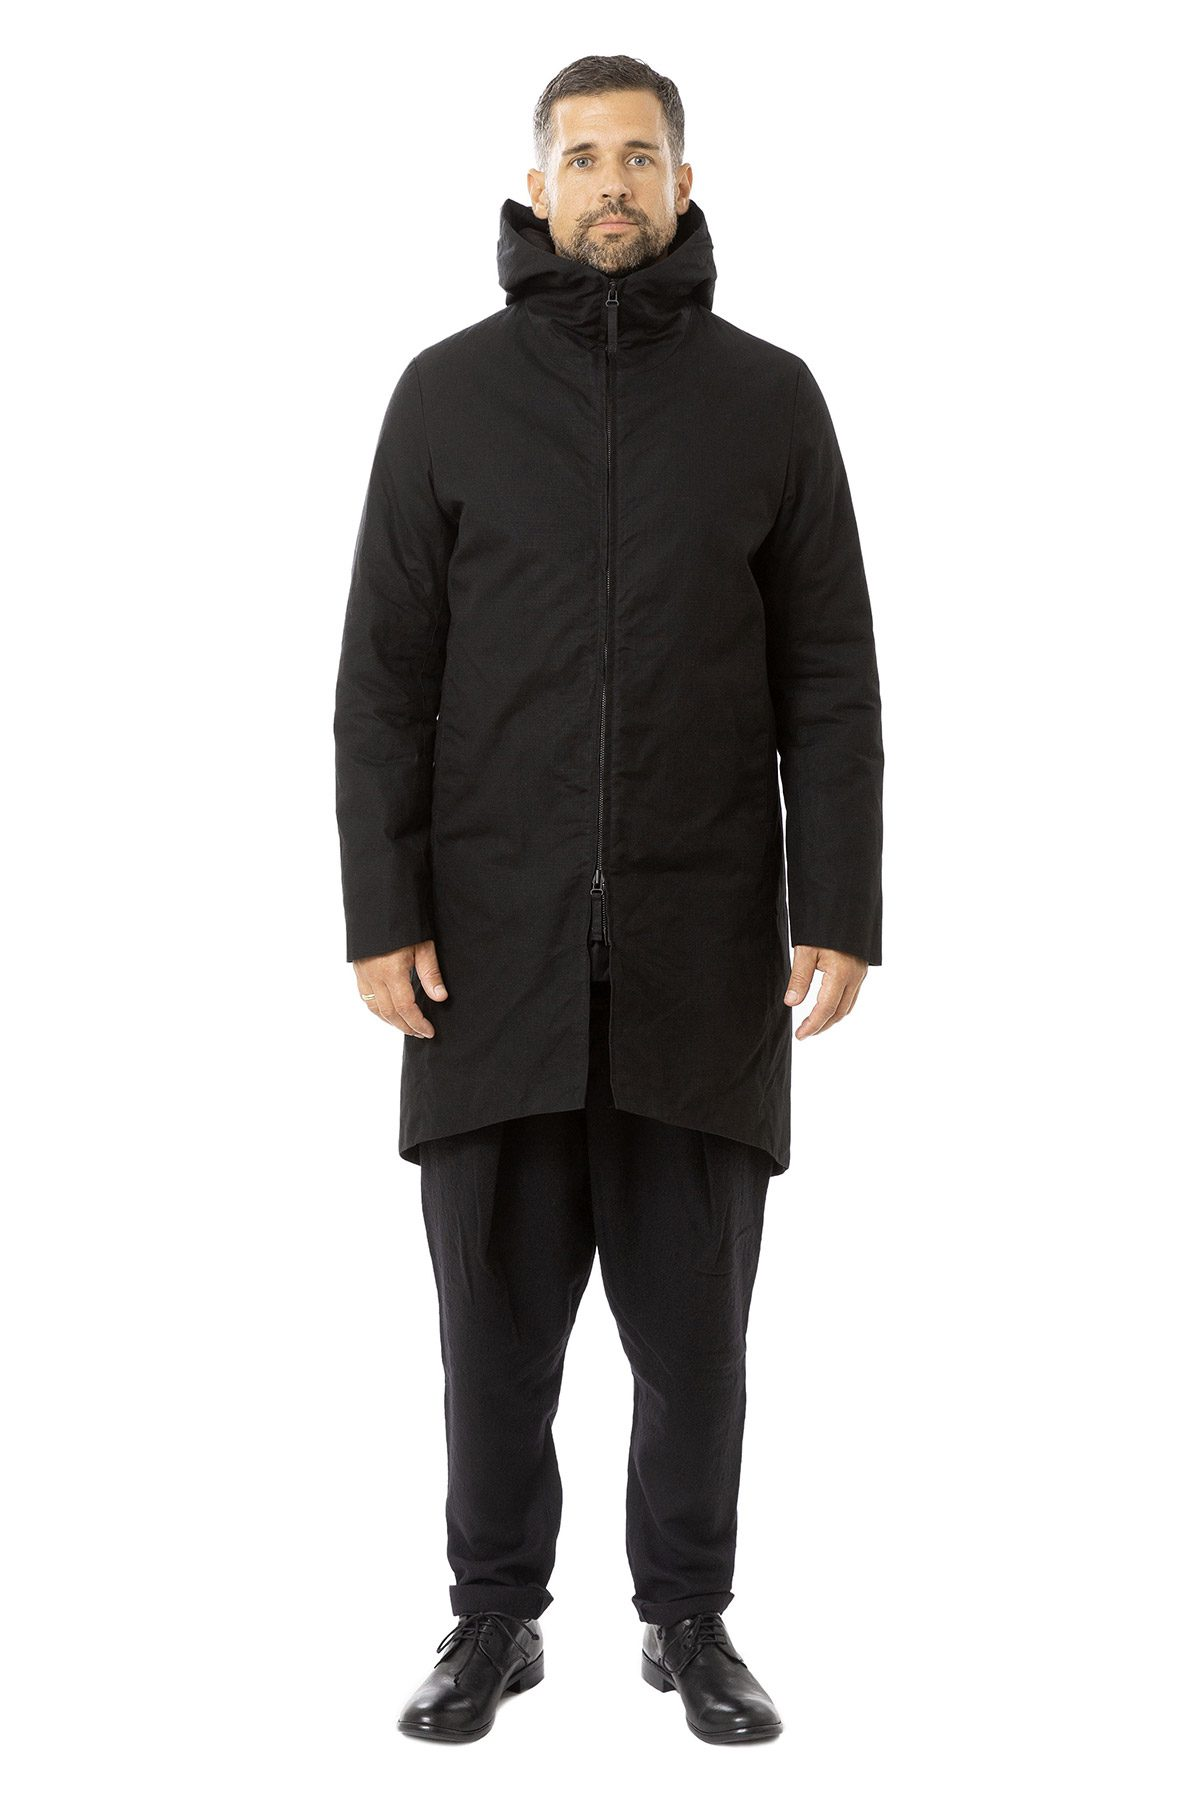 hannibal aw19 parka mantel rouven ink schwarz front